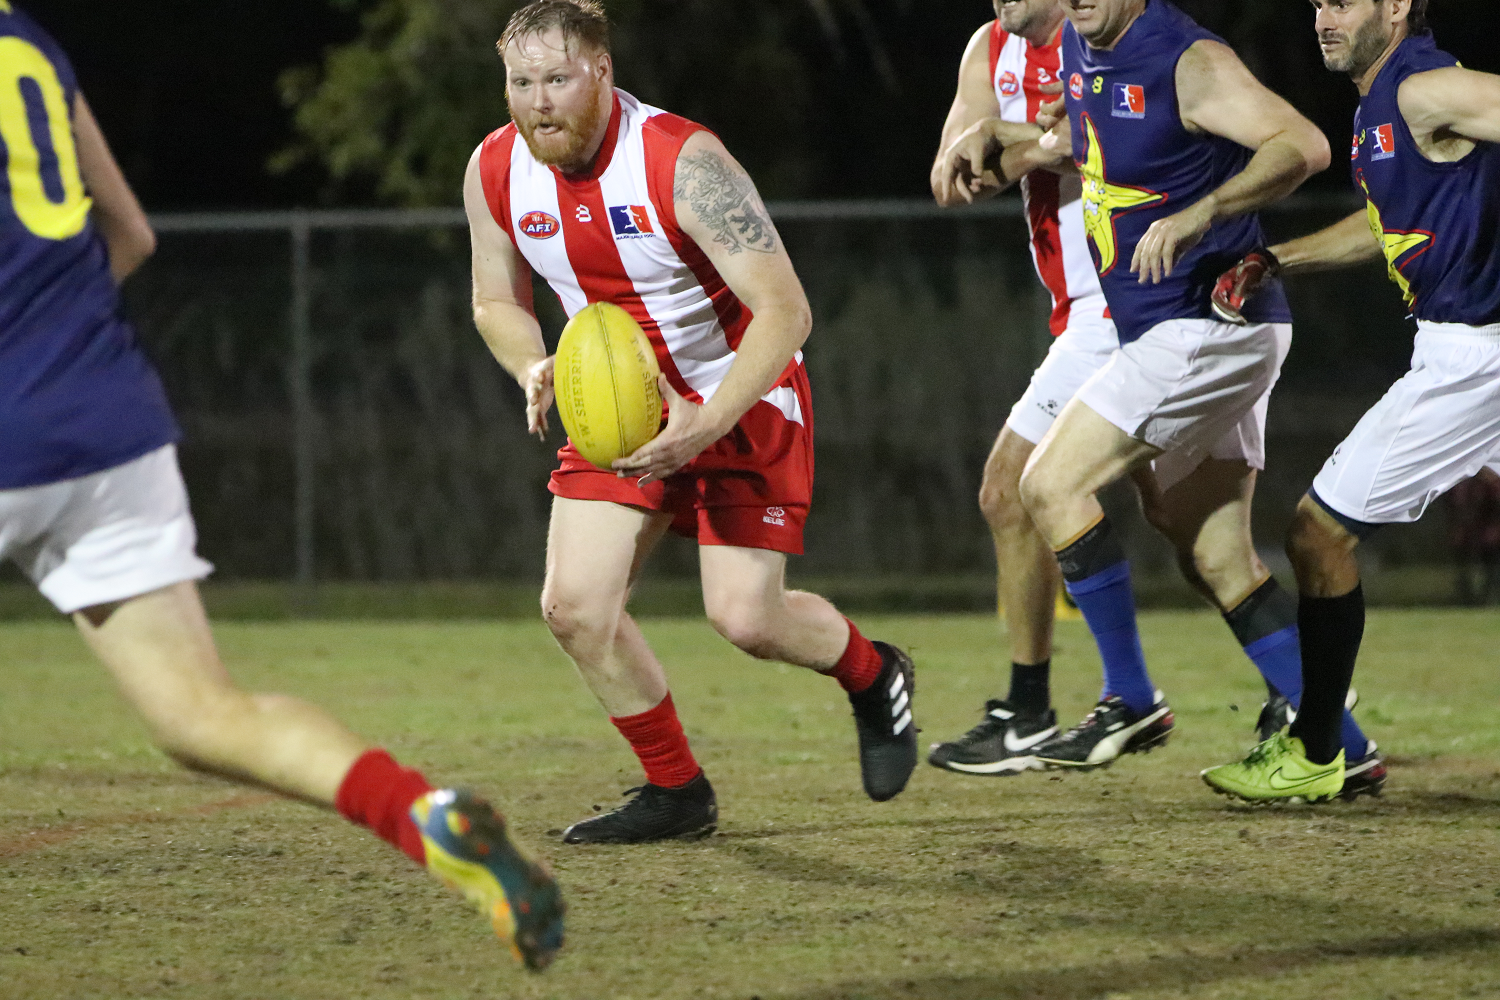 Footy 9s action